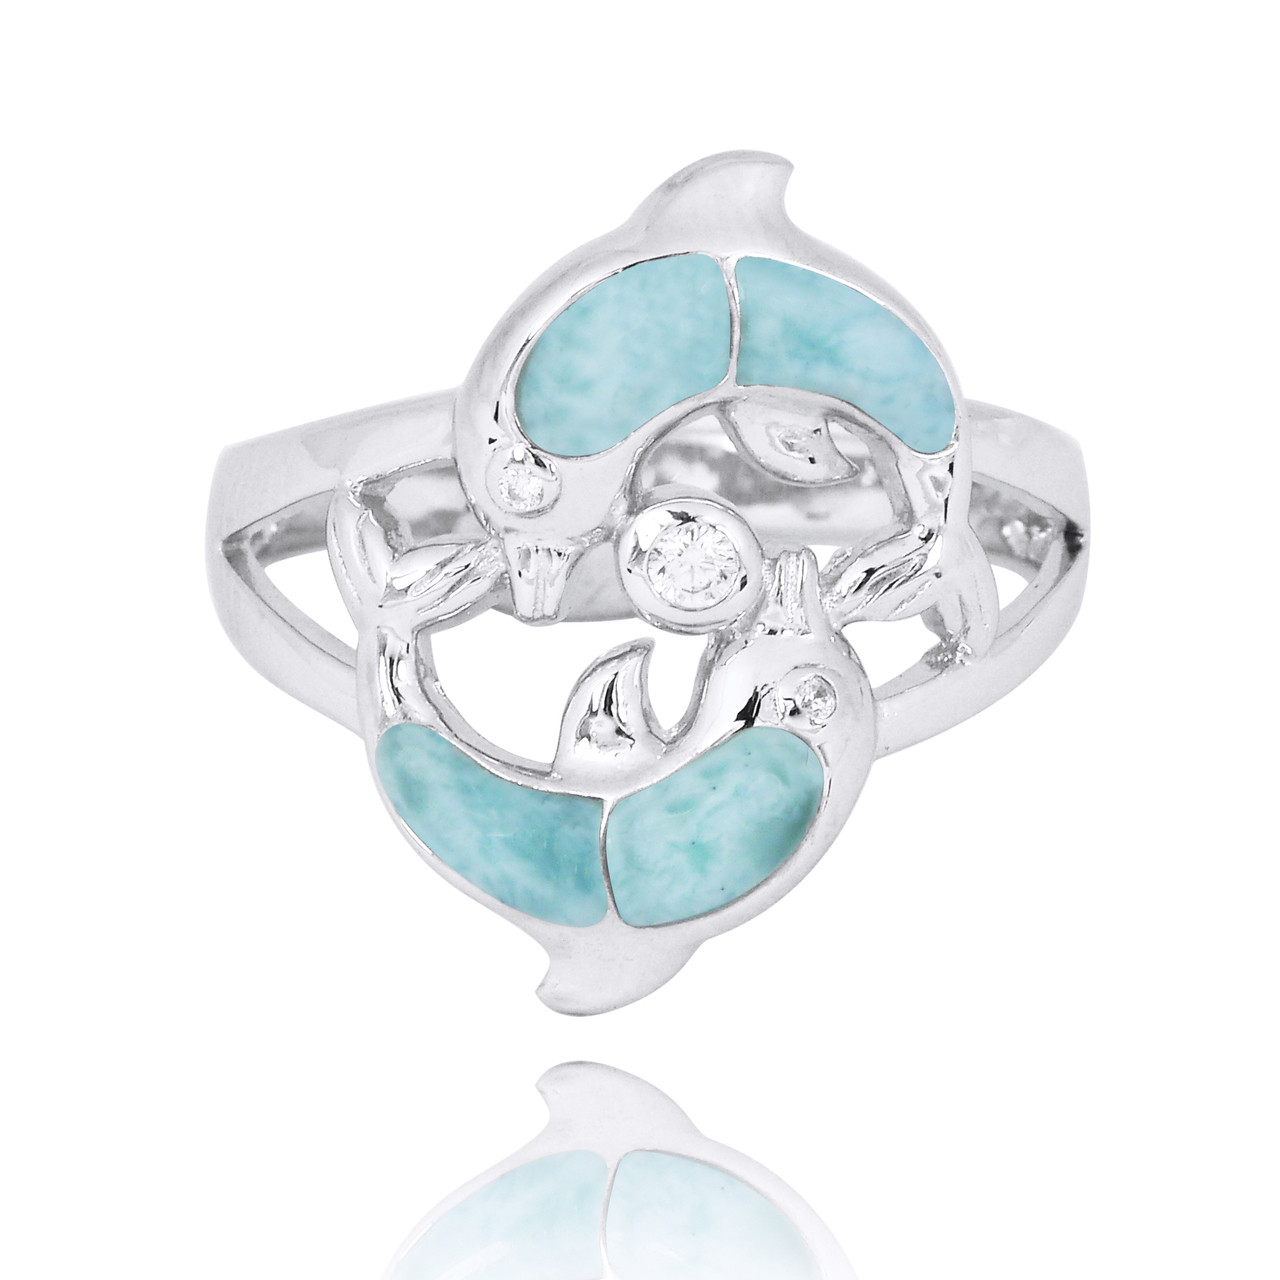 Playing Sterling Silver Dolphins Ring with Larimar and White CZ